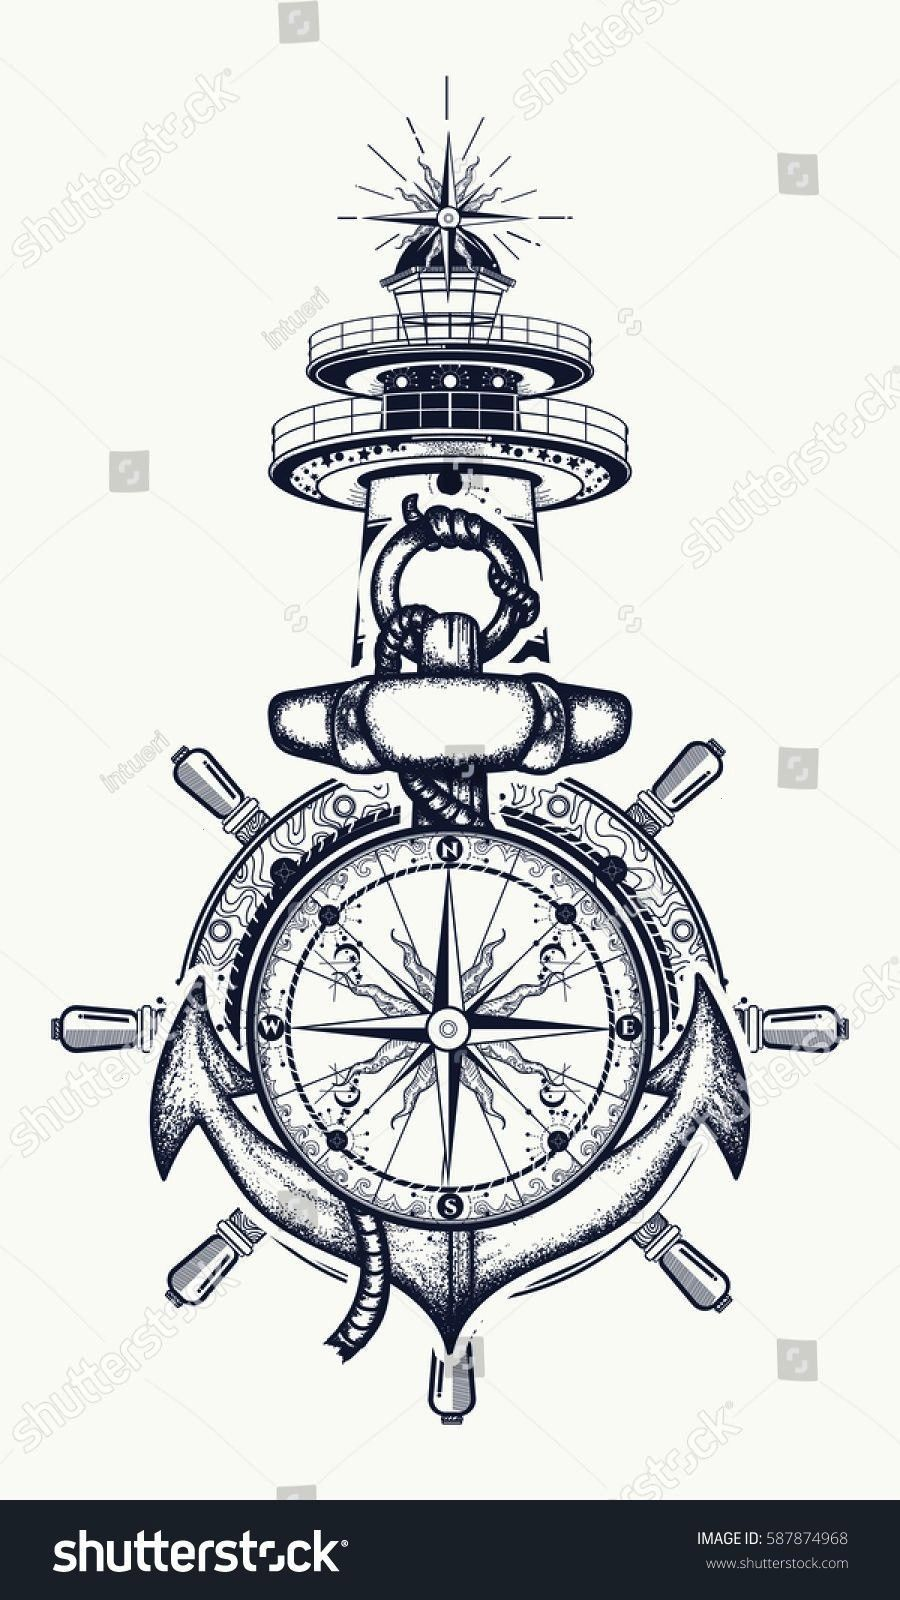 steering wheel, compass, lighthouse, tattoo art. Icon stock vector (royalty free) 587874968 - Anch